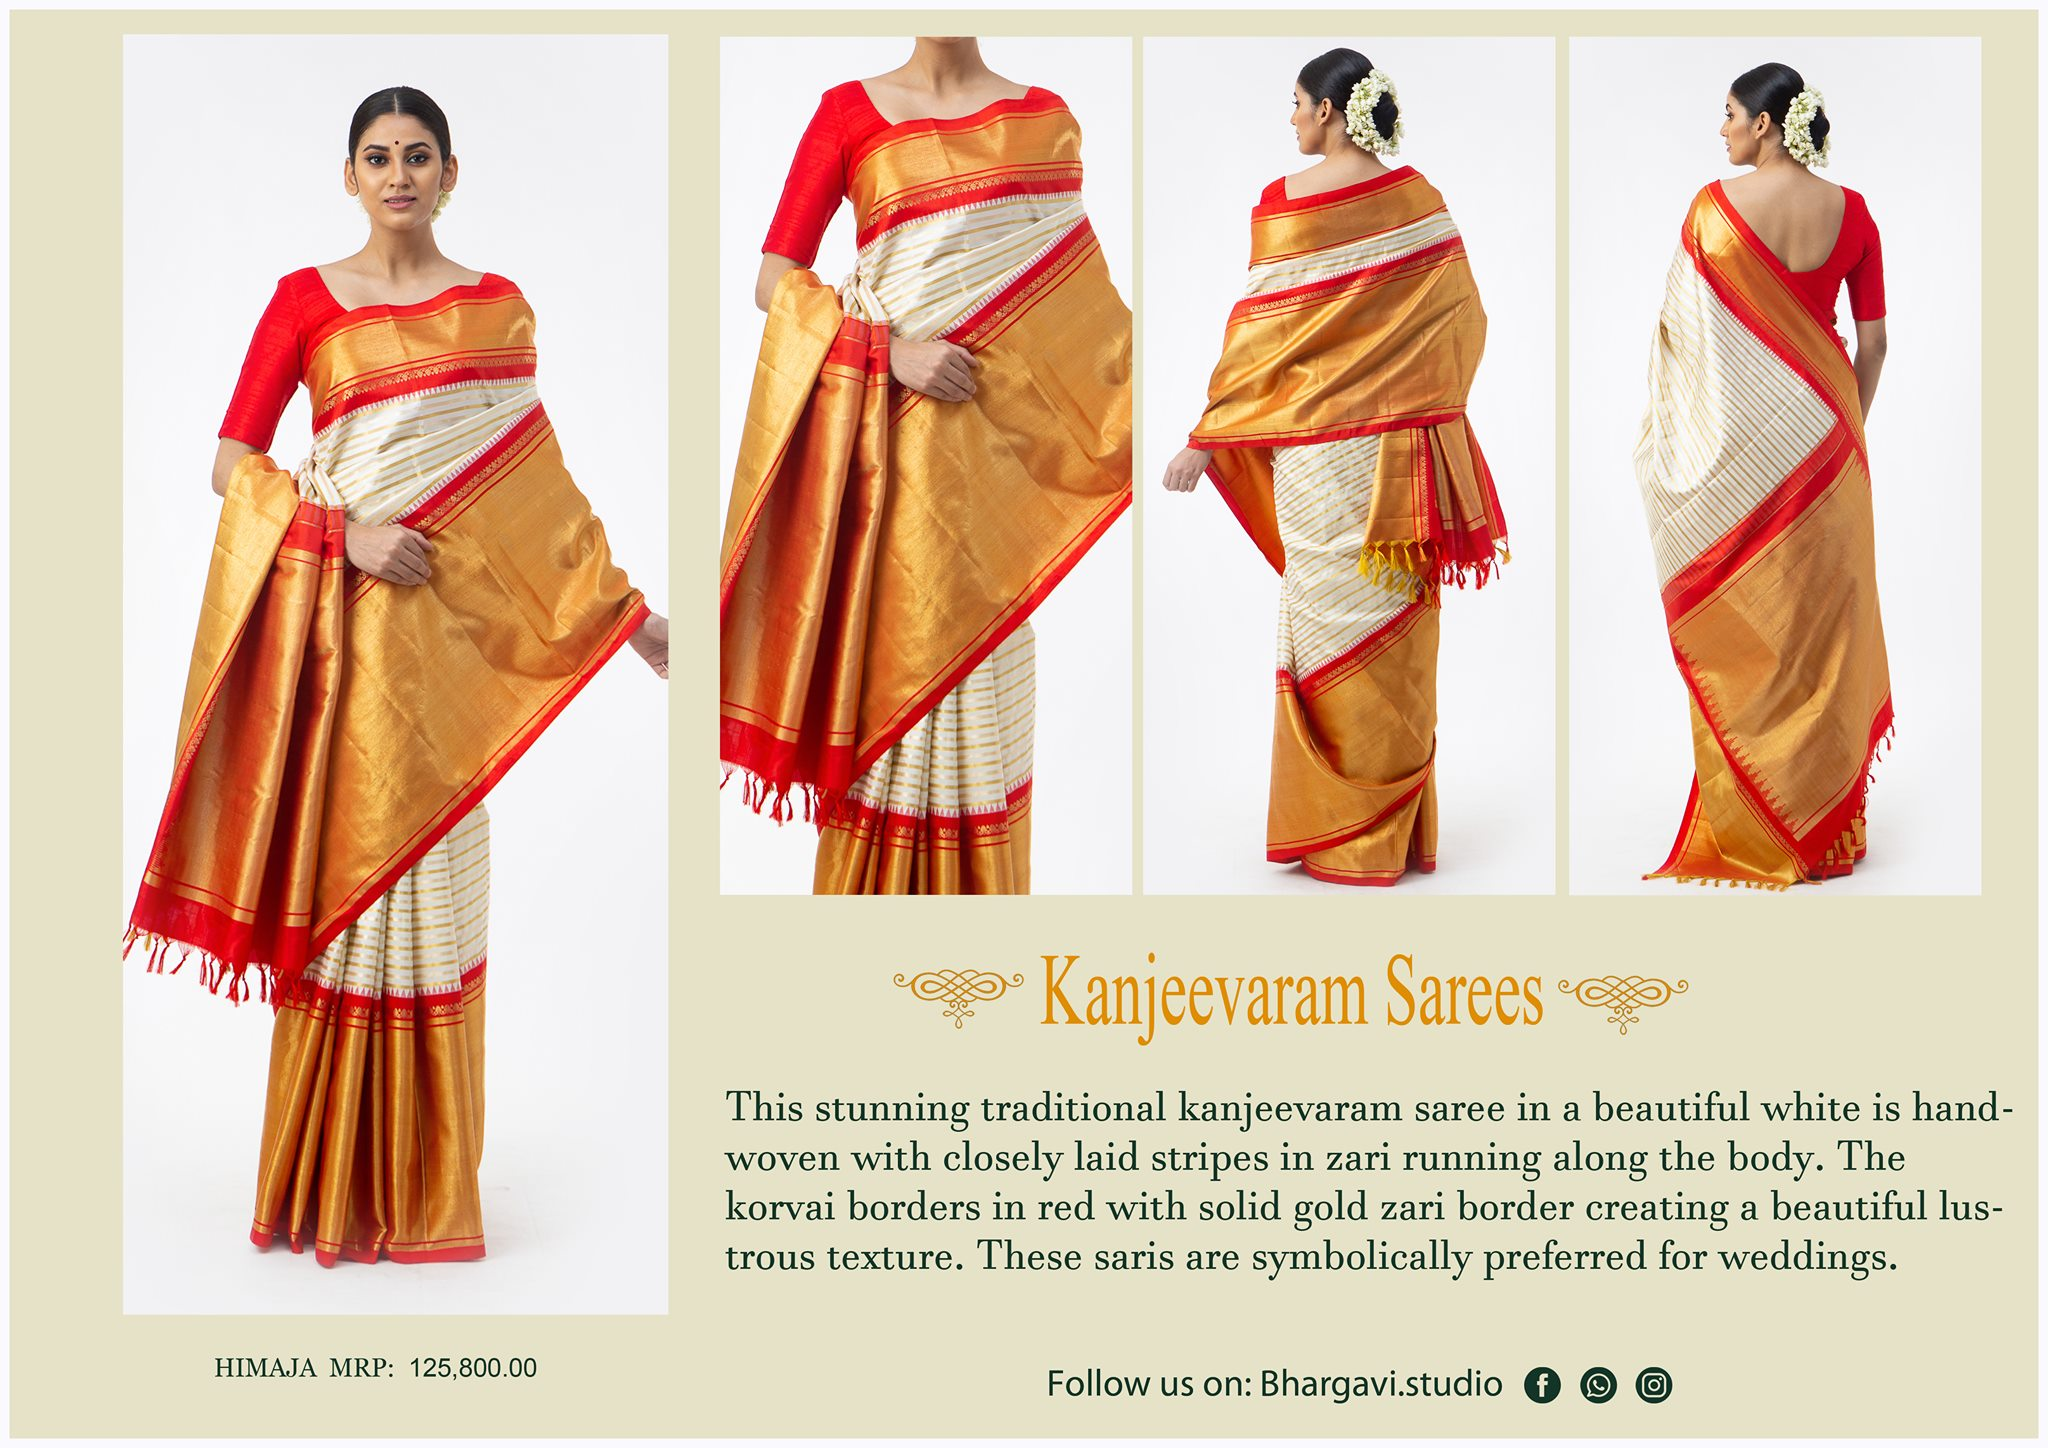 This timeless traditional kanjeevaram saree in alovely white is hand woven with closely laid stripes in jari running along the body. The korvai boarders in pretty red with solid gold zari boarder creating a beautiful lustrous texture.   2021-05-05